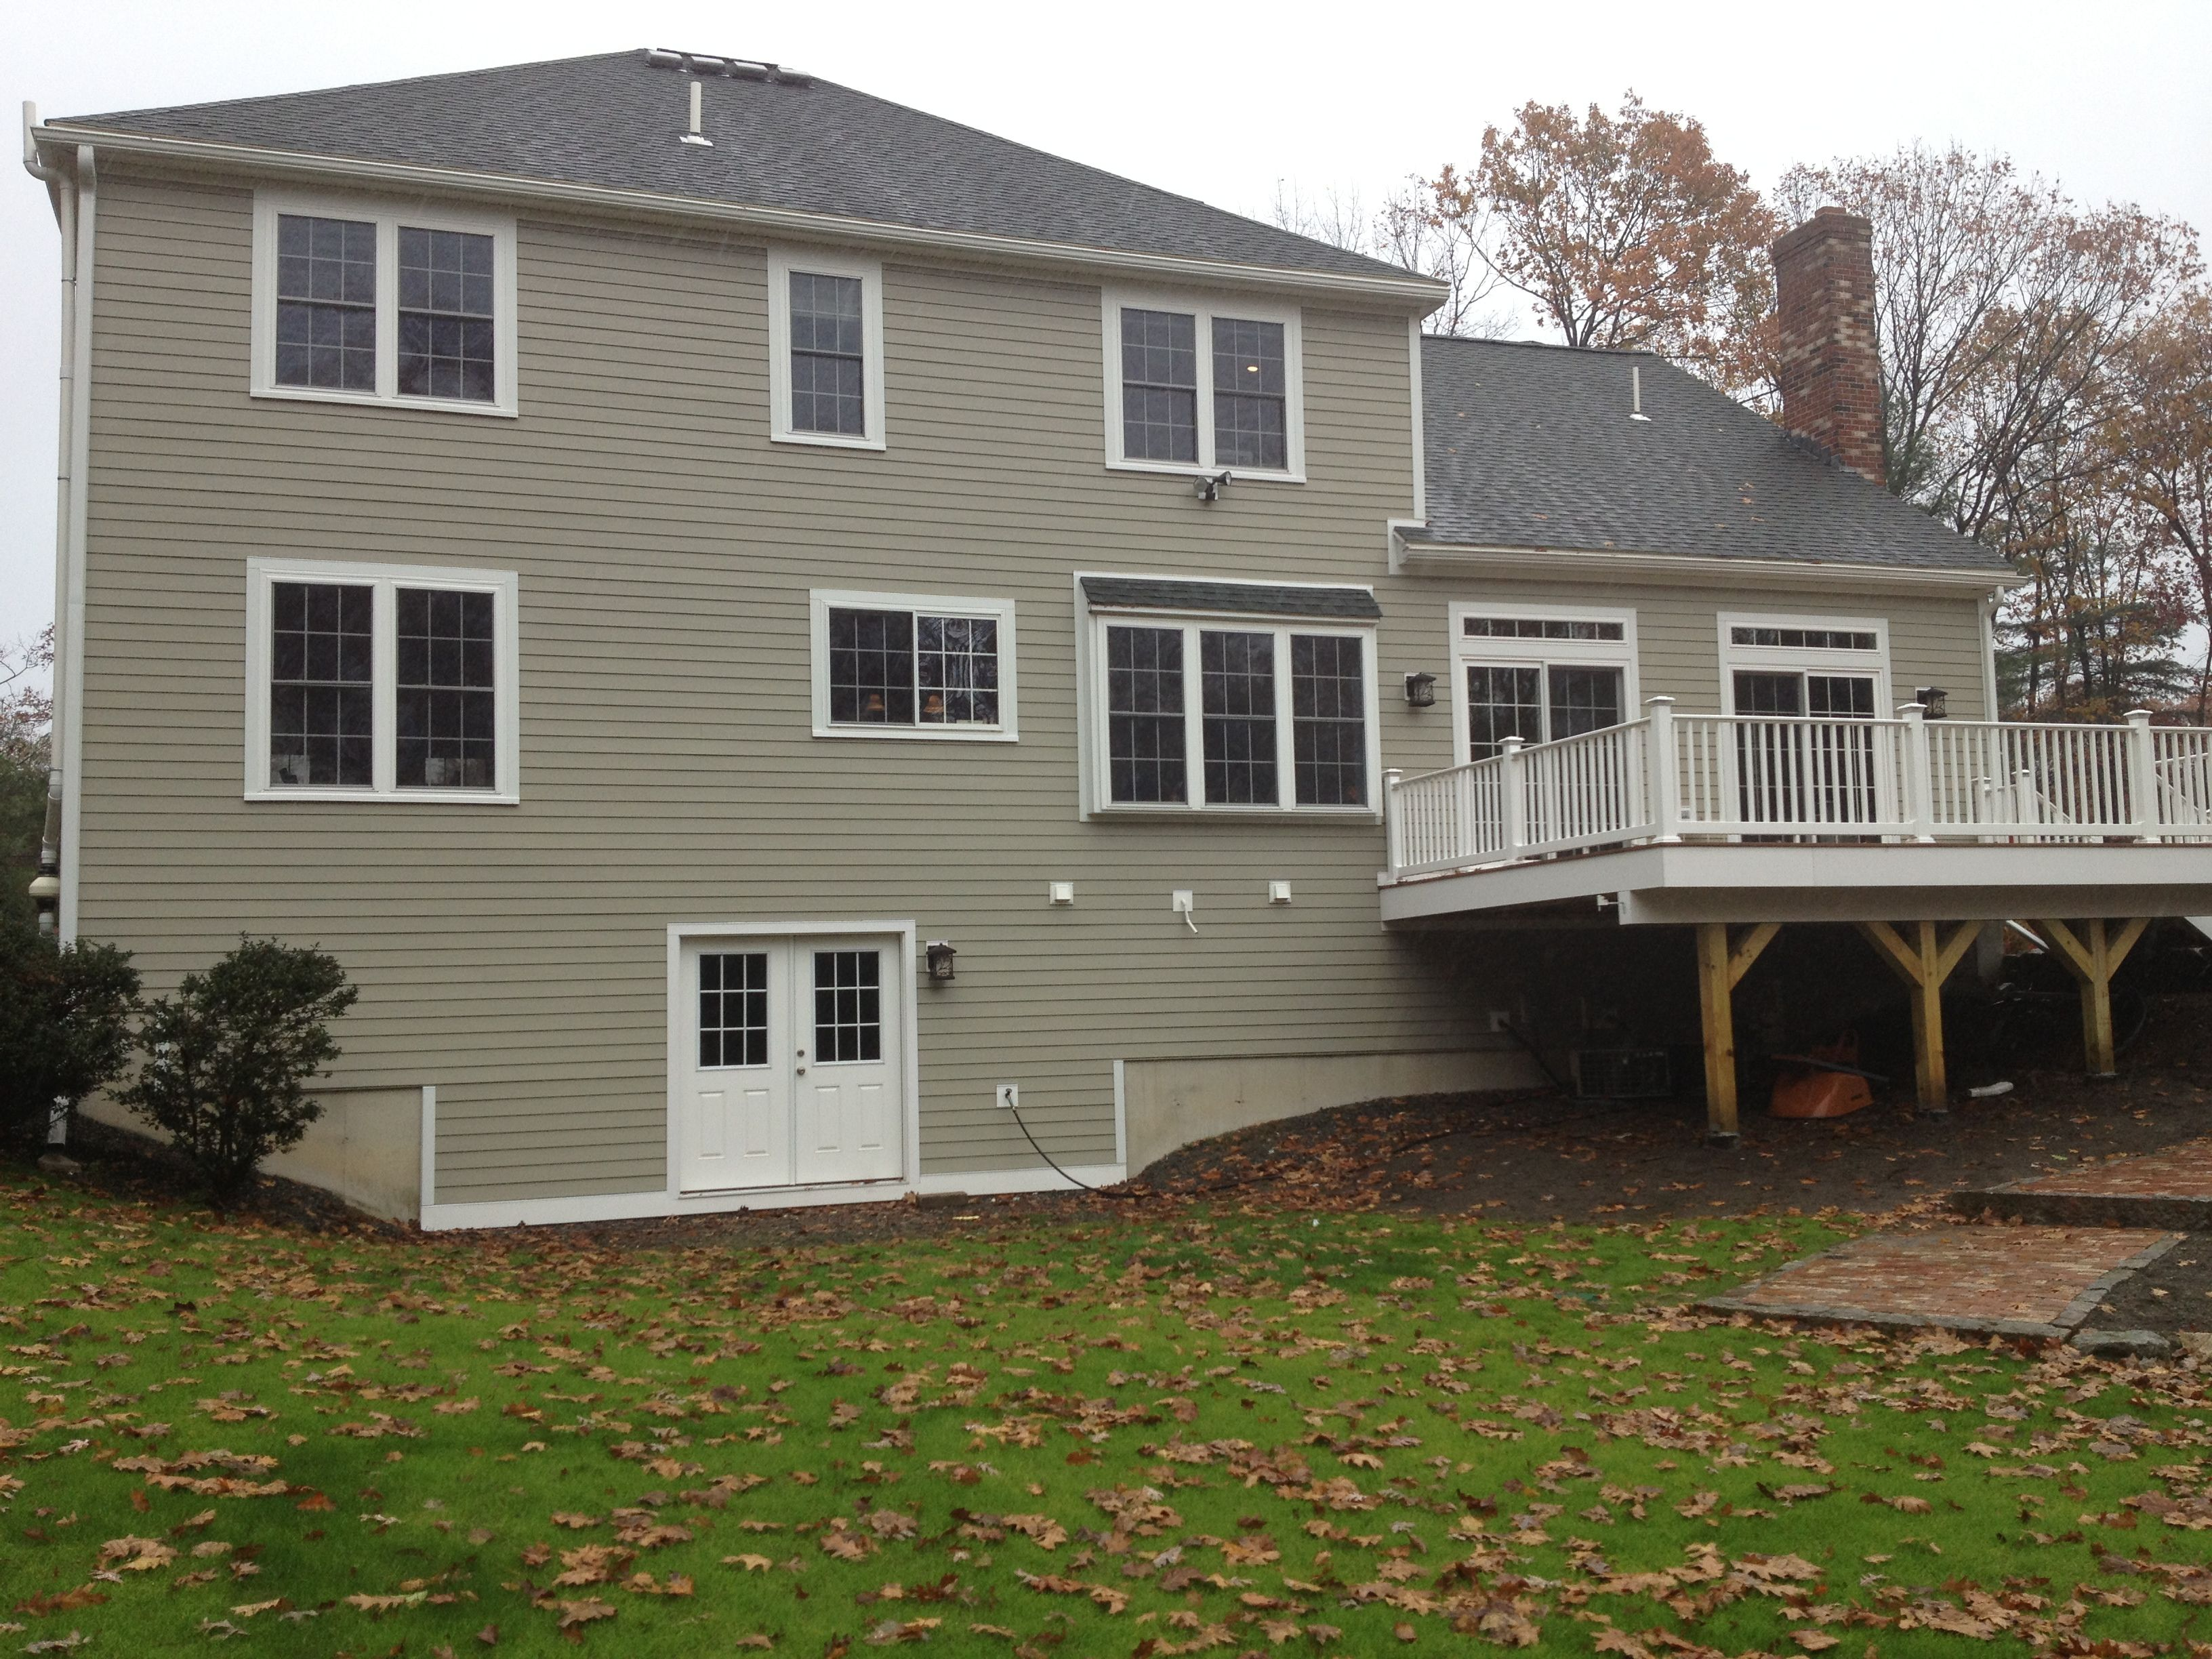 These Homeowners Had A Great Deal Of Rot And Water Damage Pbs Installed James Hardie Fiber Cement Siding Hardie Moldings And Trim Hardie Plank Hardie Siding